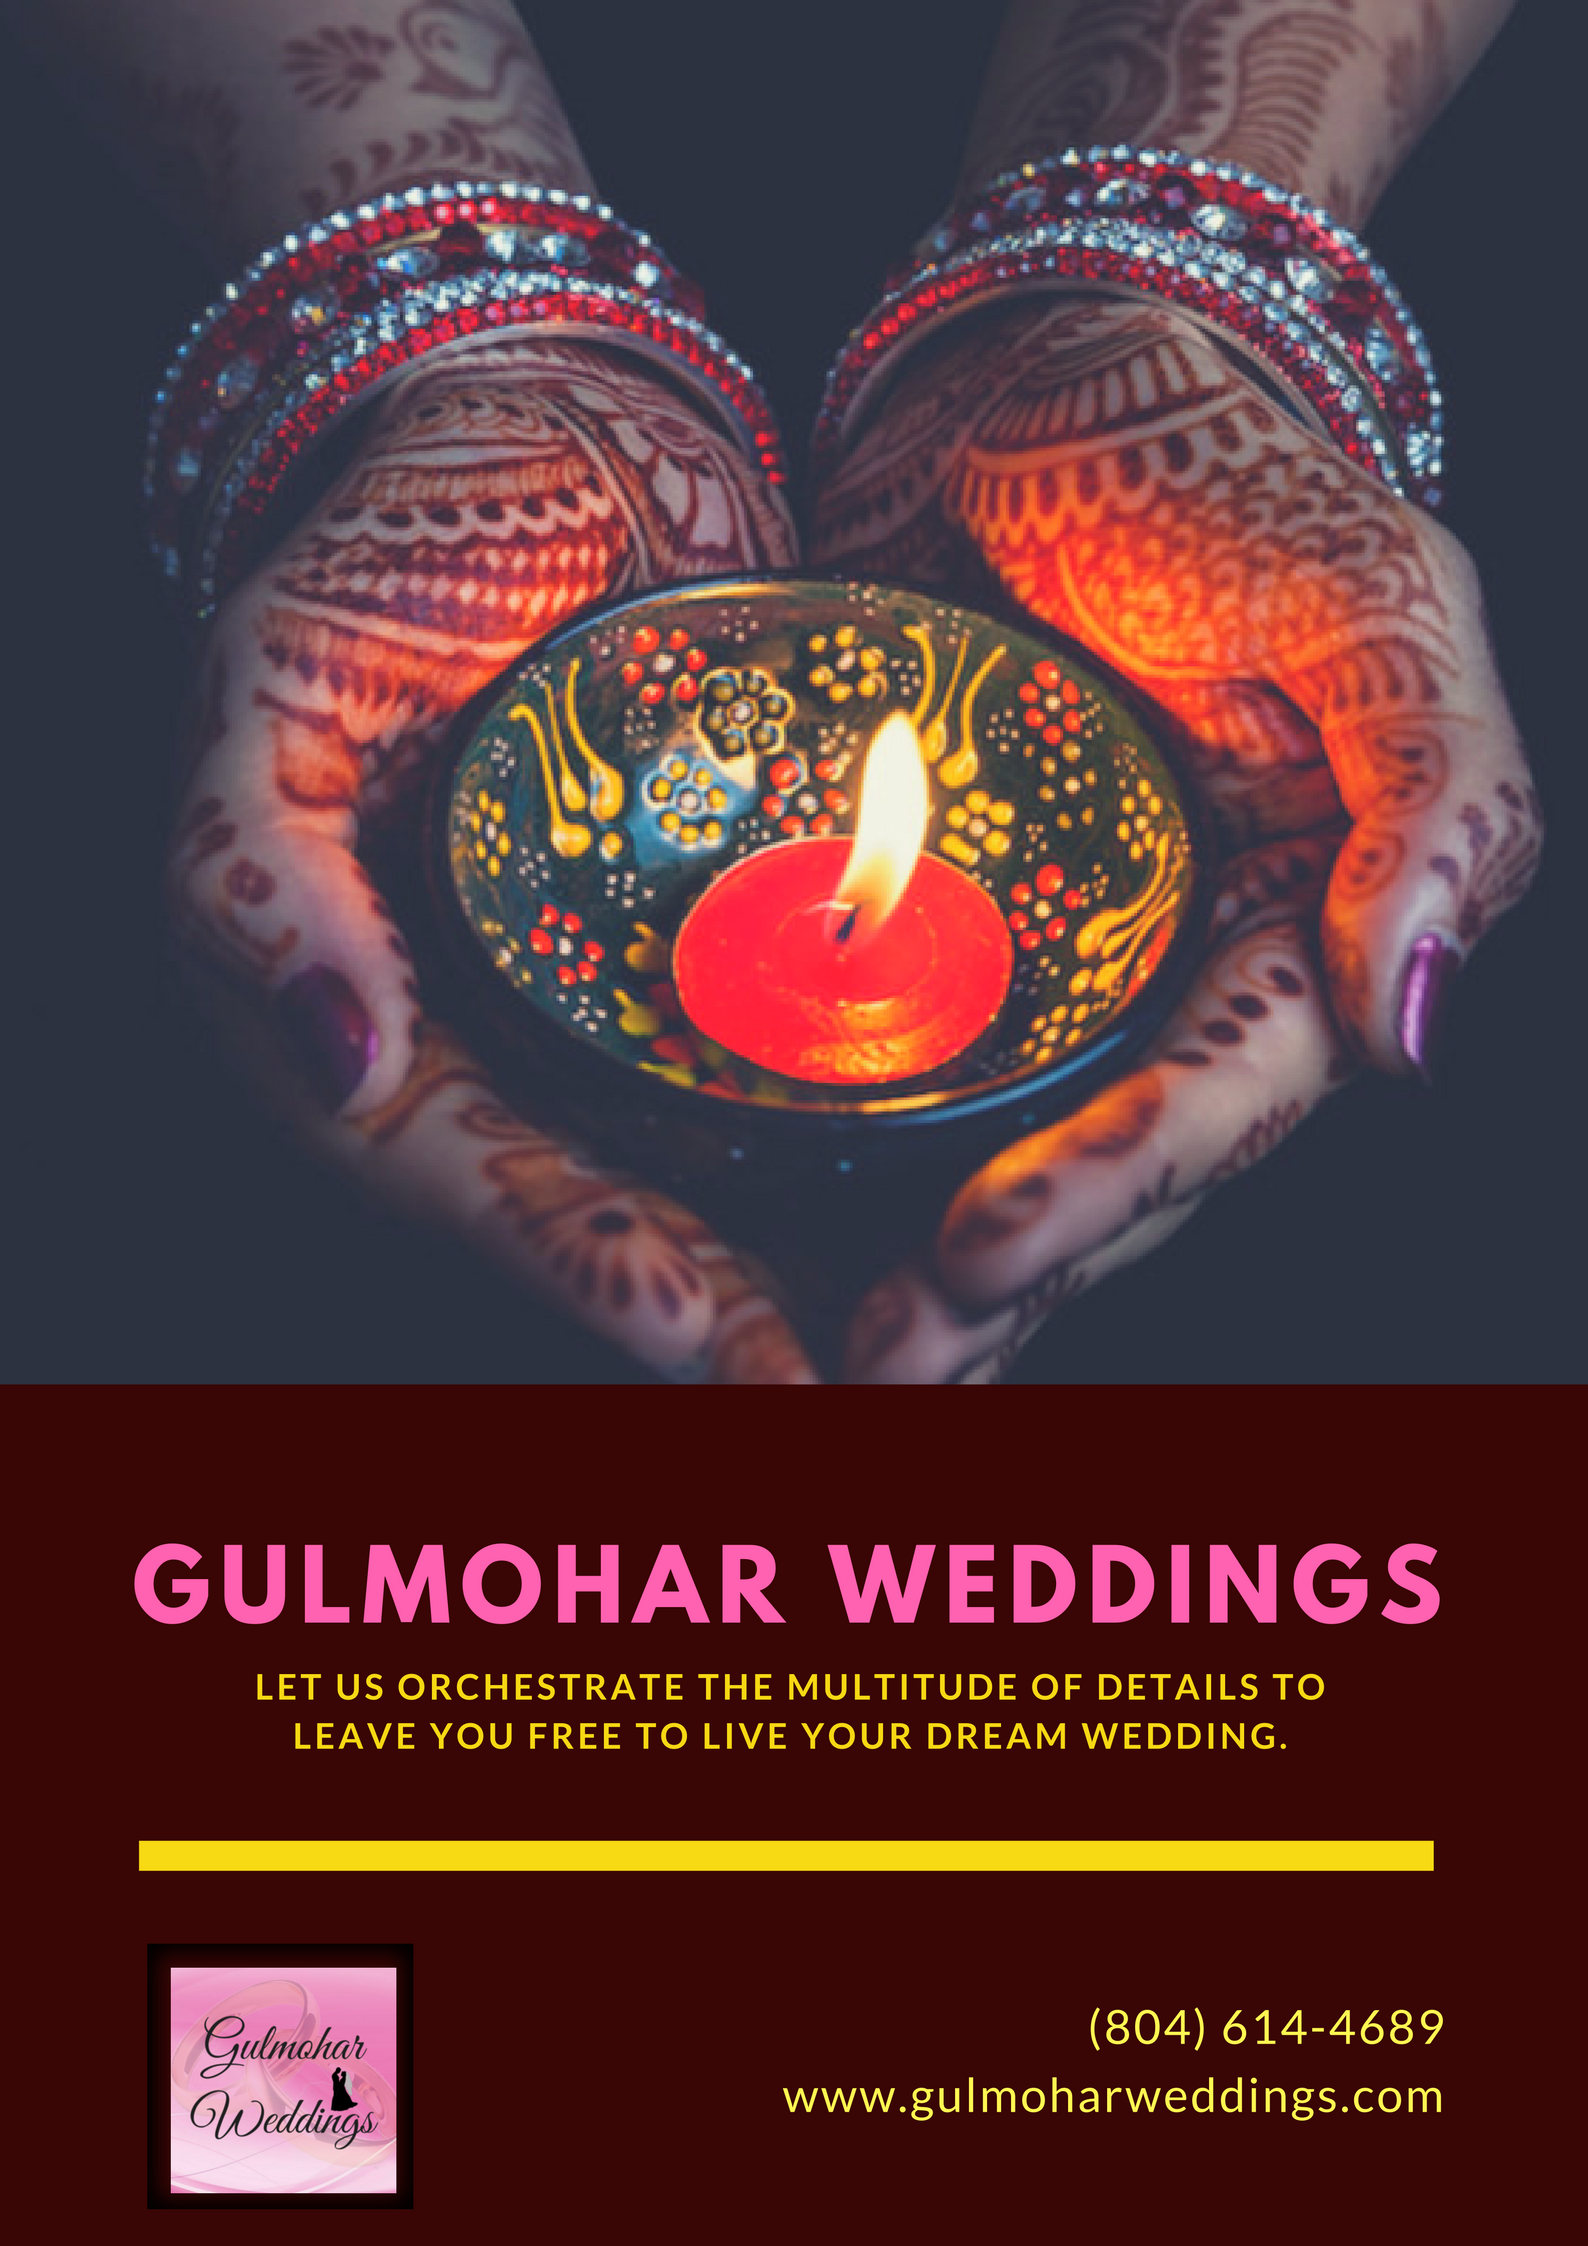 Services Offered Indian Wedding Decorator In Richmond Va Indian Wedding Decorator In Virgi With Images Nyc Wedding Venues Indian Wedding Planner Affordable Wedding Venues